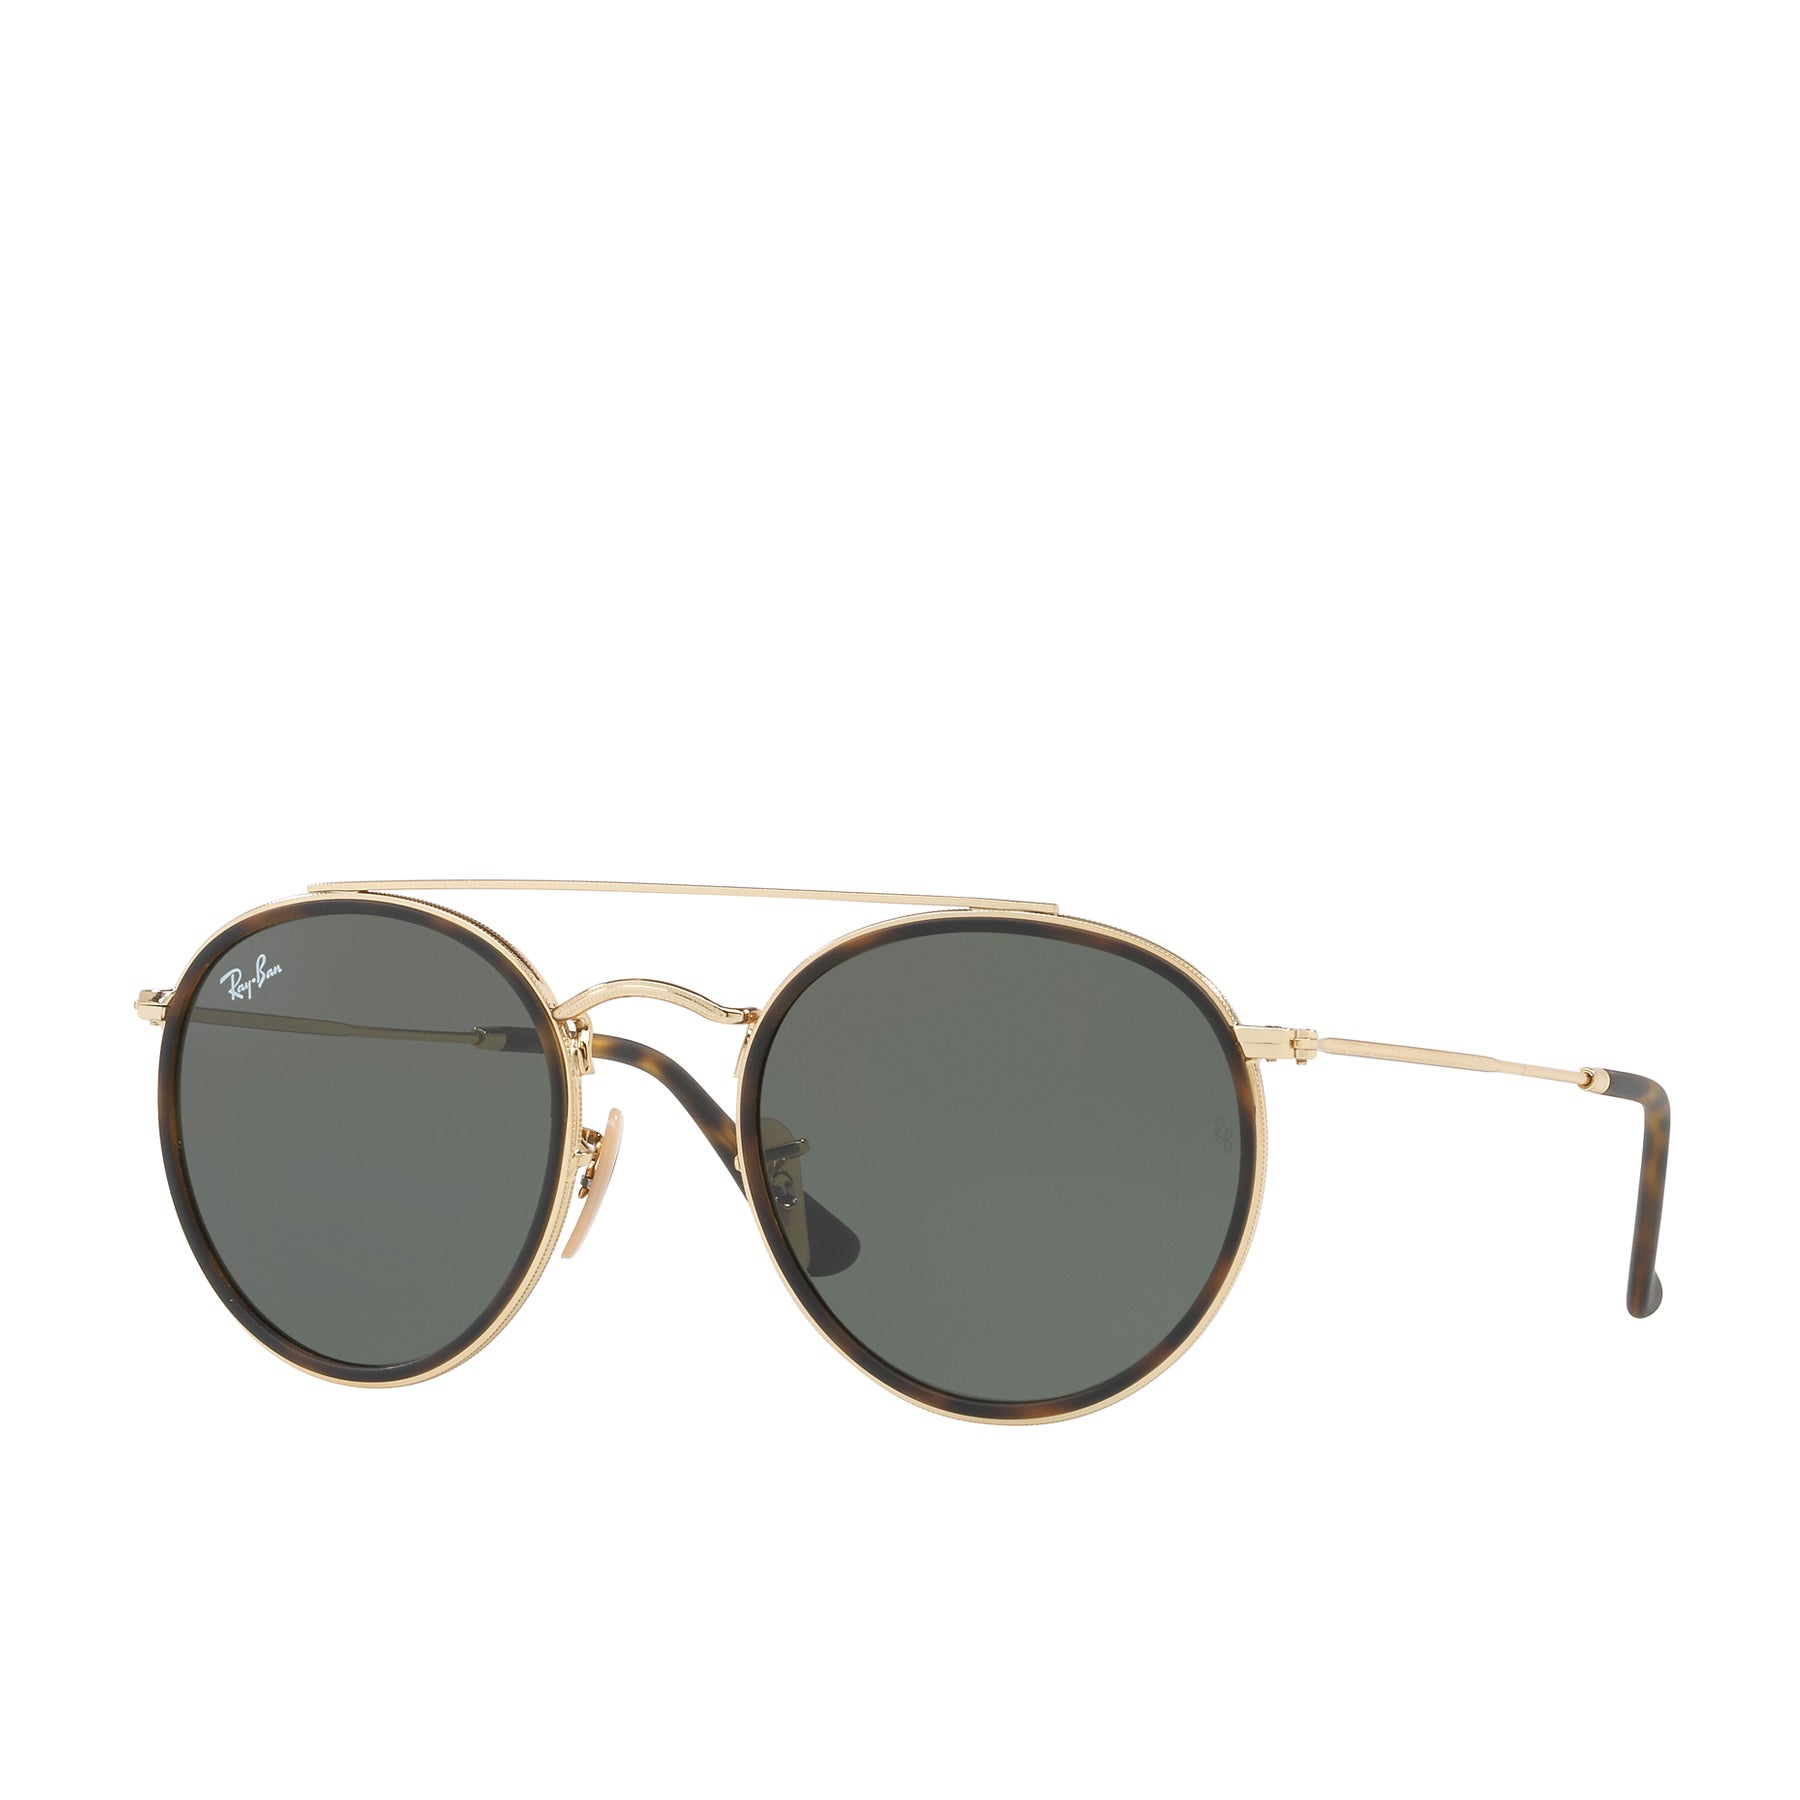 Ray-Ban Round Bridge Womens Sunglasses - Gold Green